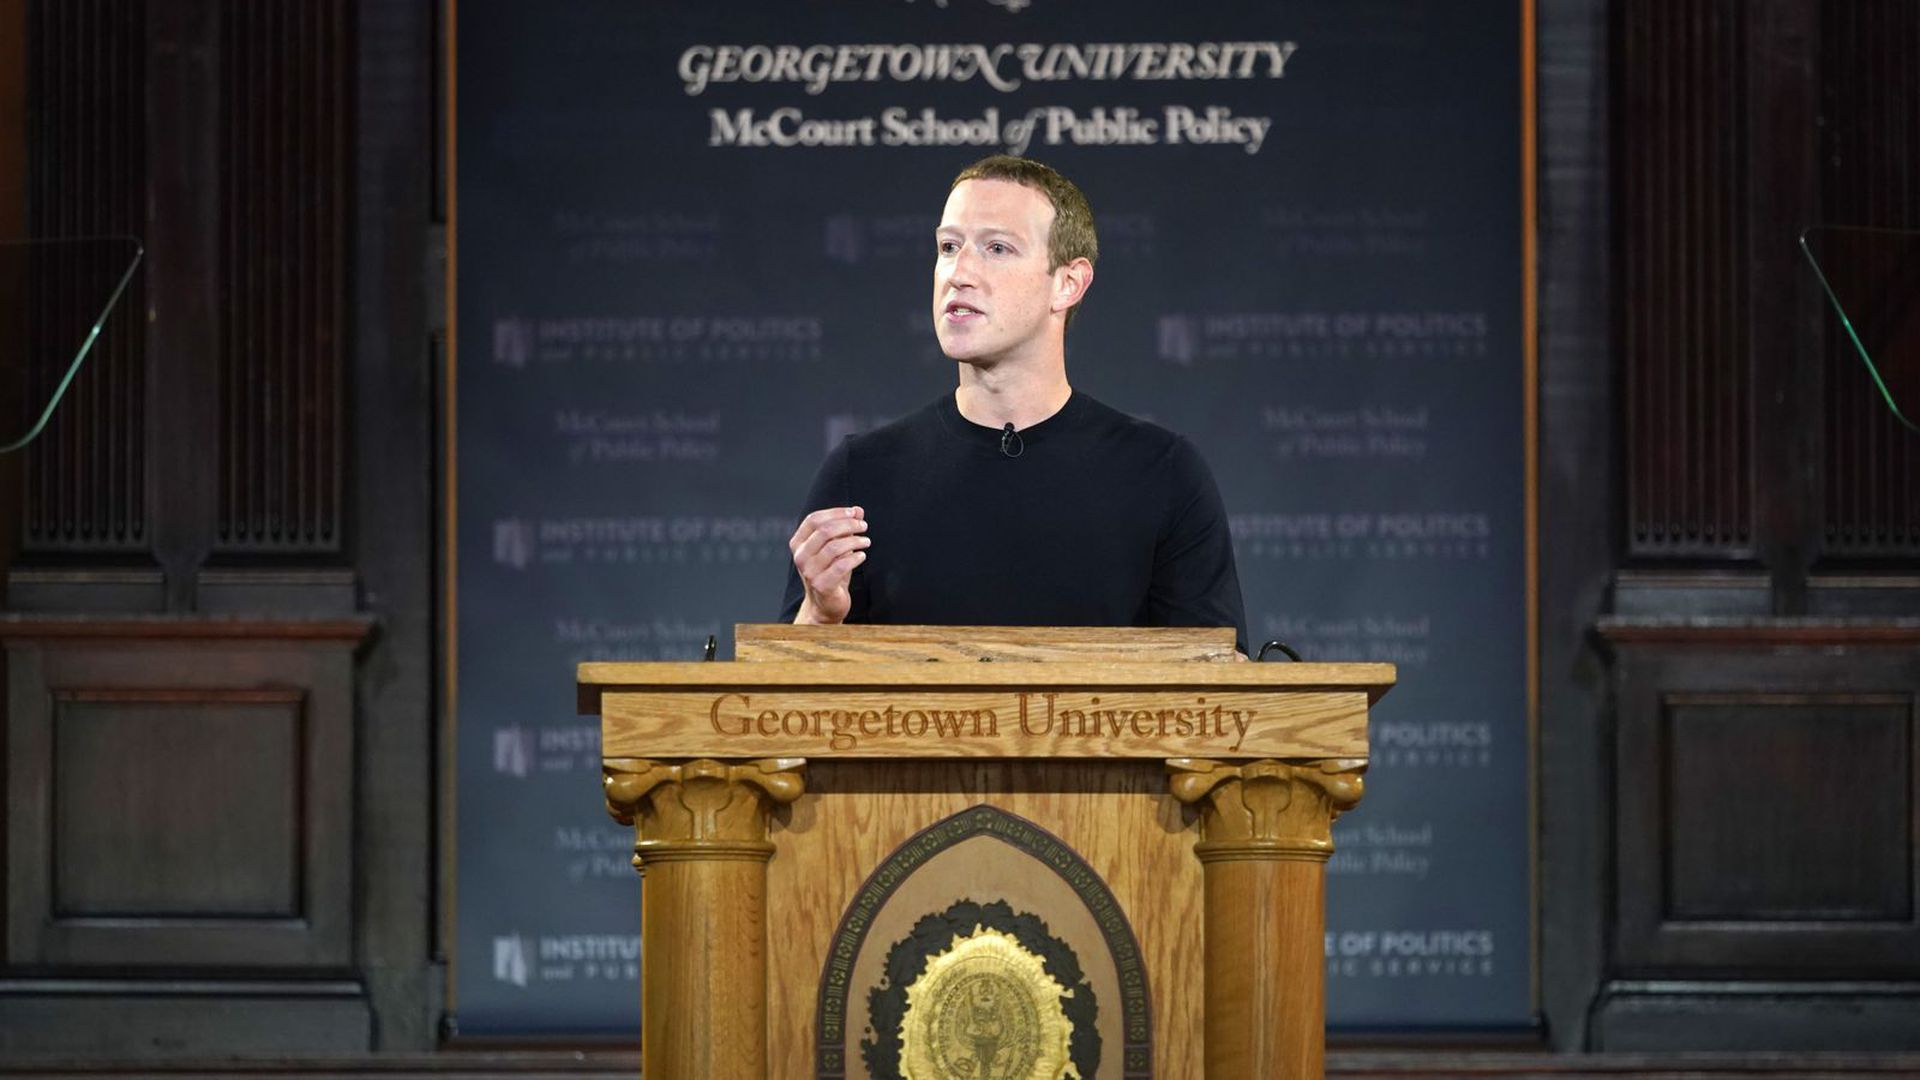 Photo of Facebook CEO Mark Zuckerberg speaking at a Georgetown University lectern